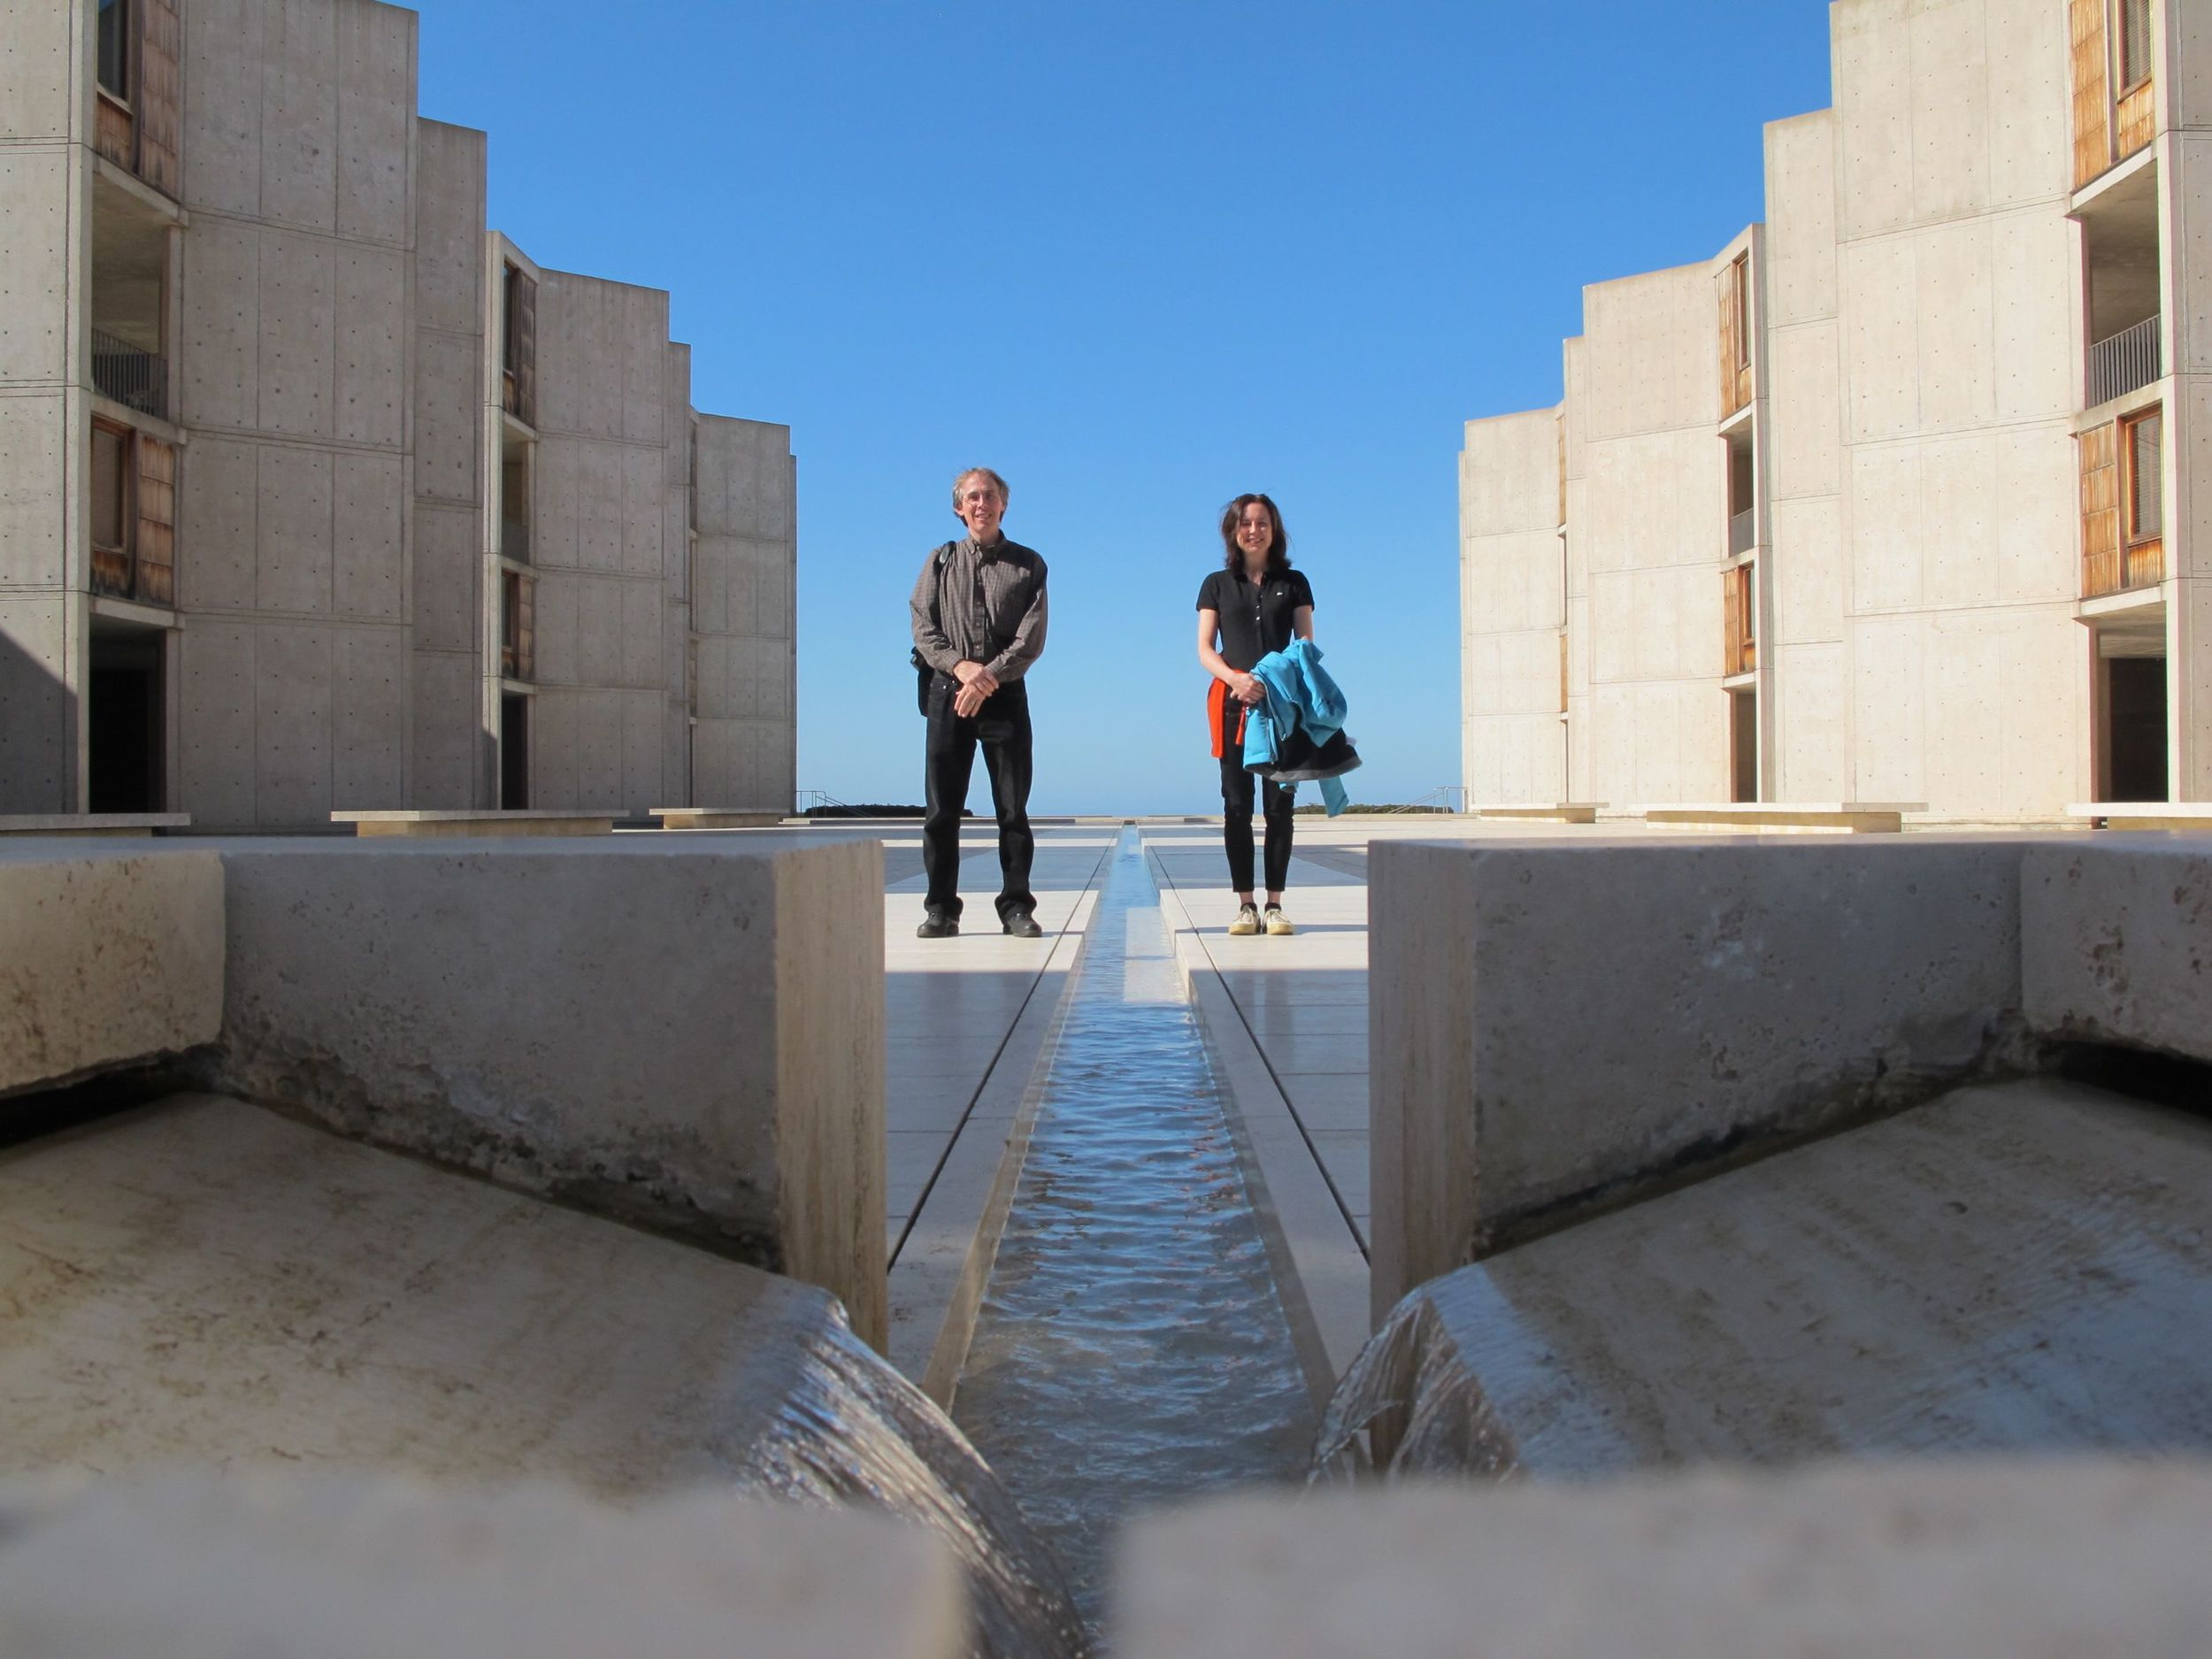 Pamelia and I visited the Salk Institute, a biological research center founded in 1960 by the legendary Jonas Salk that is home to multiple Nobel winners. It was designed by the brilliant architect Louis Kahn, whose unusual personal story (he kept three separate families, with a wife and two mistresses) you may recall from the movie My Architect.